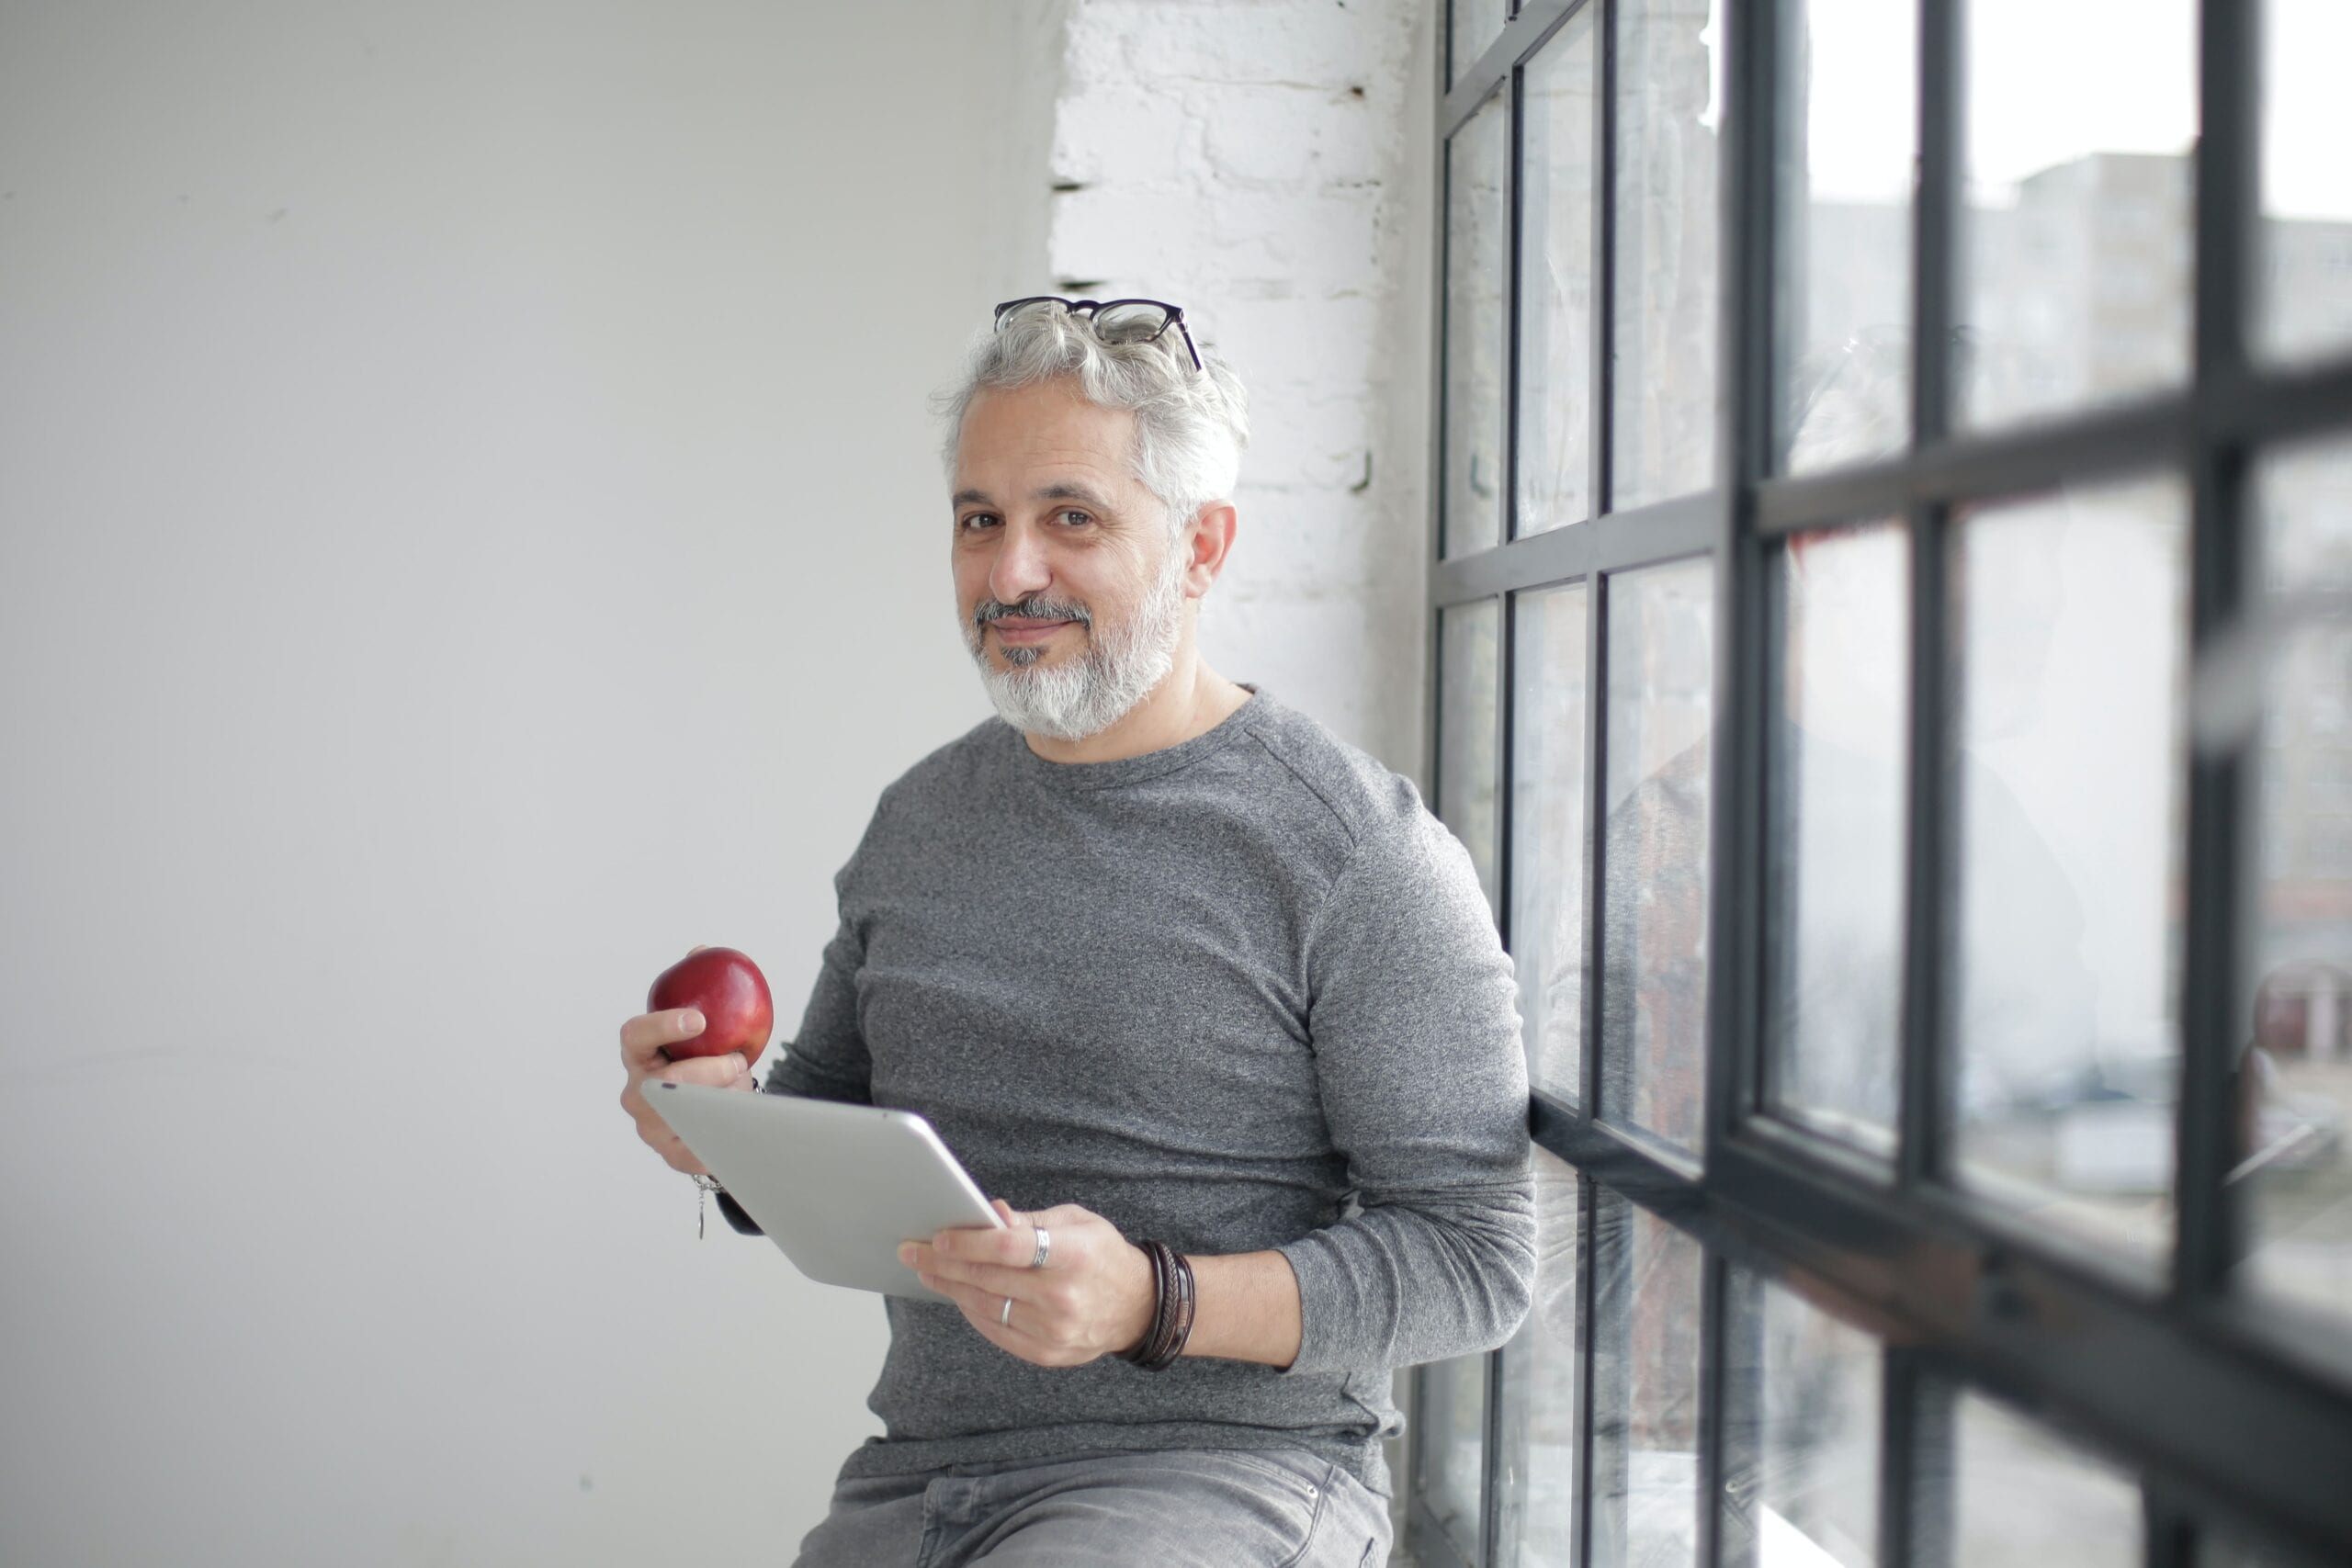 Low testosterone man standing and eating an apple